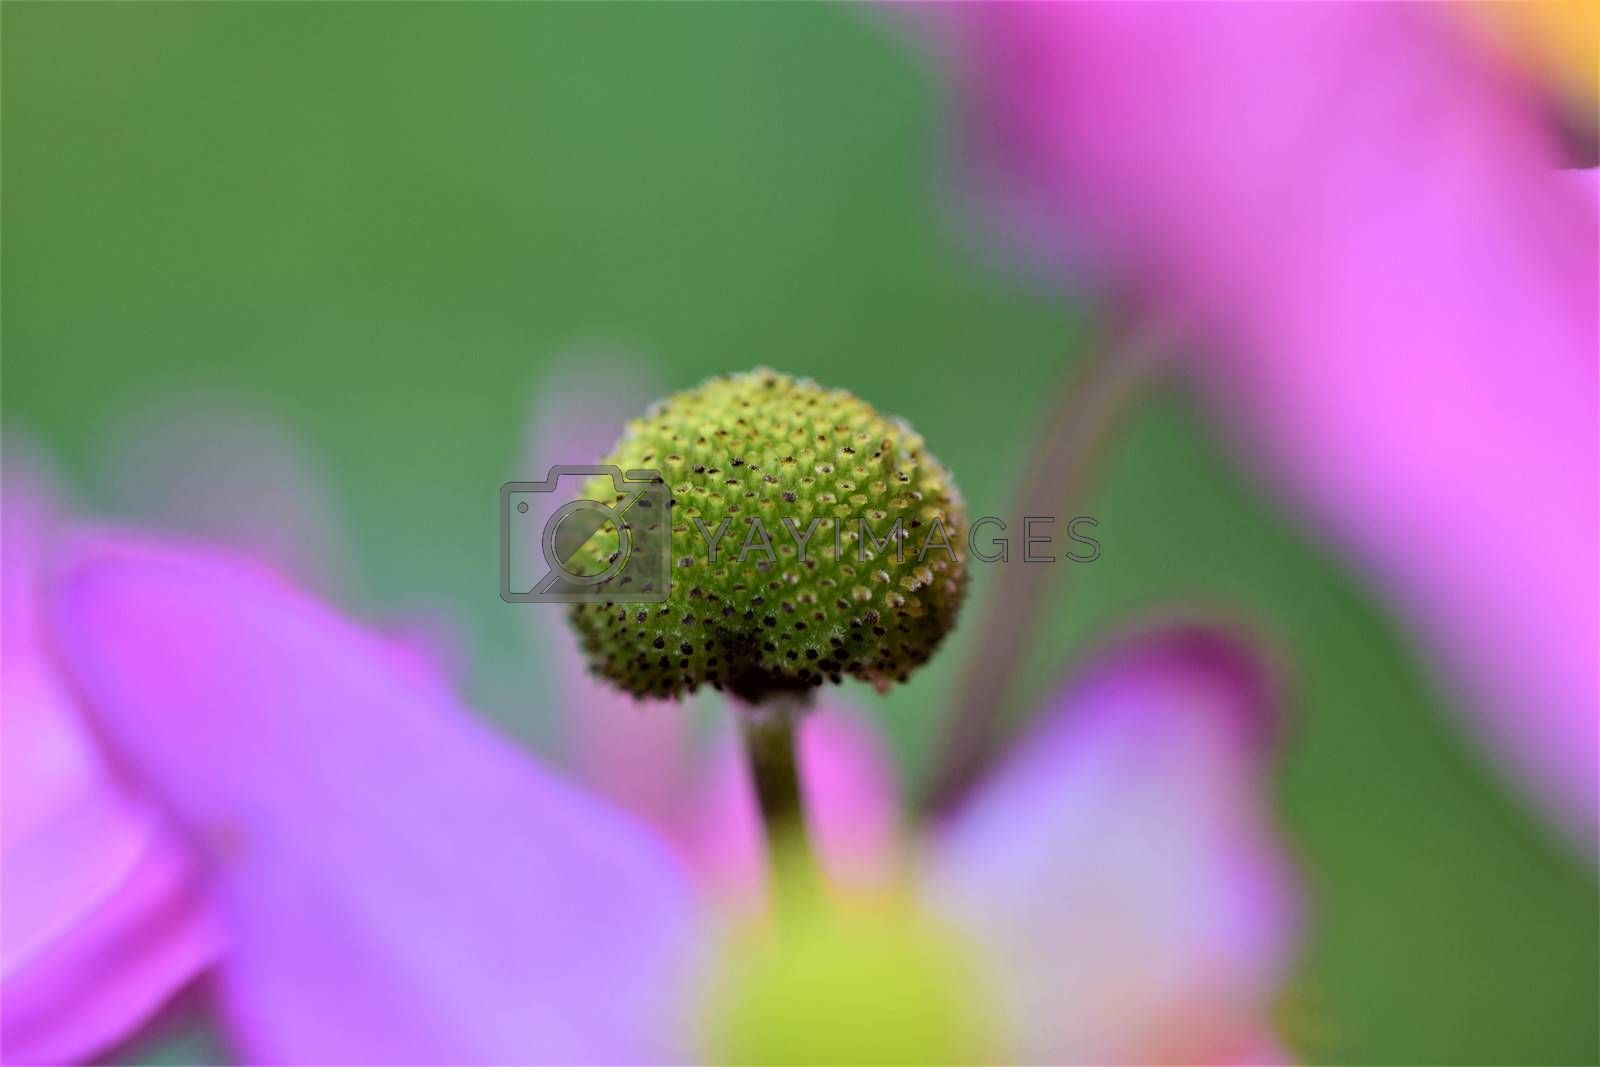 Closeup of the pistil of an autumn anemone